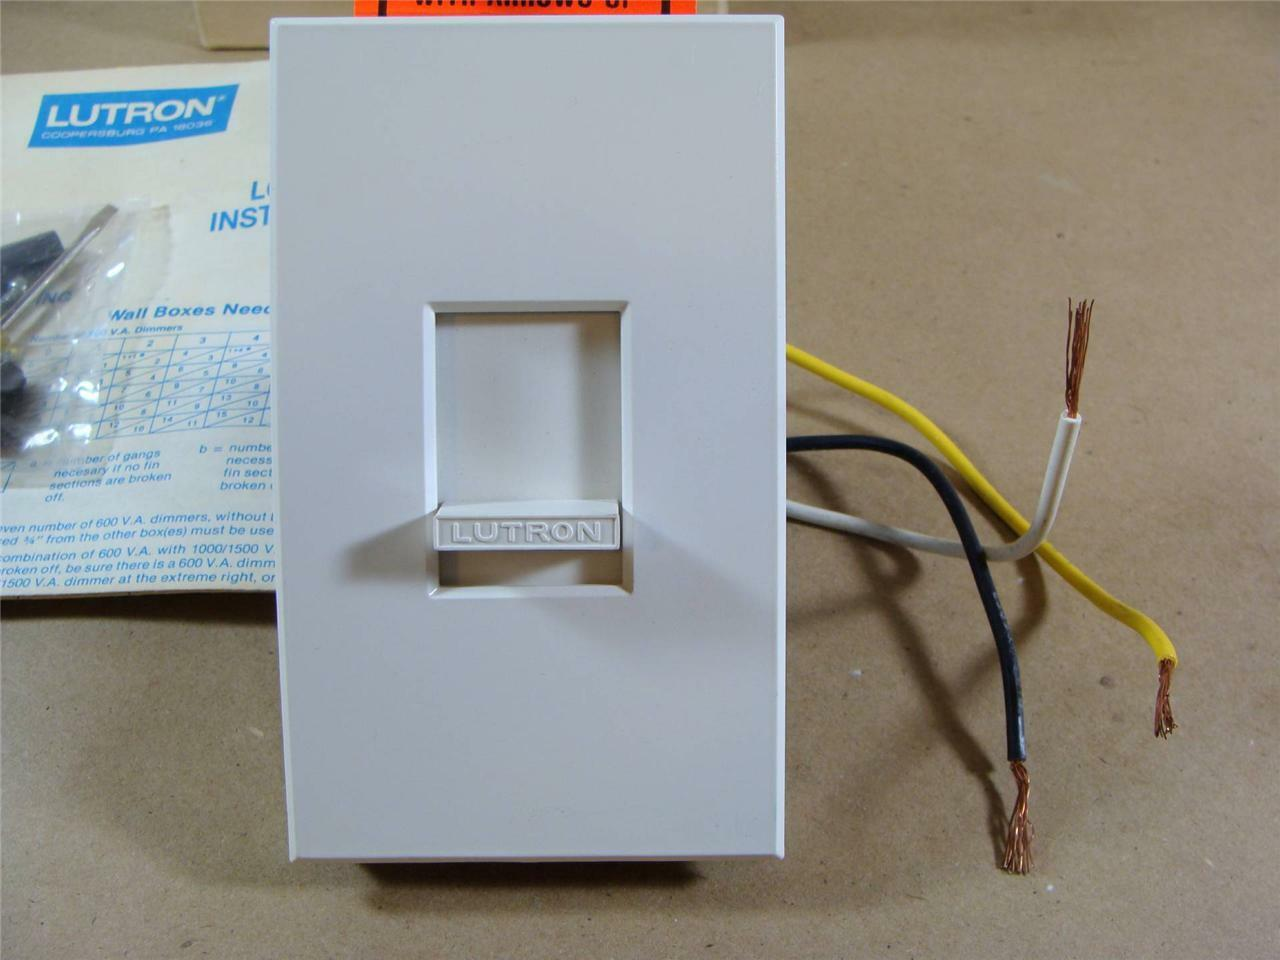 Lutron Nova Nvl-600 Low Voltage Incandescent Light Dimmer 600 Volt ...